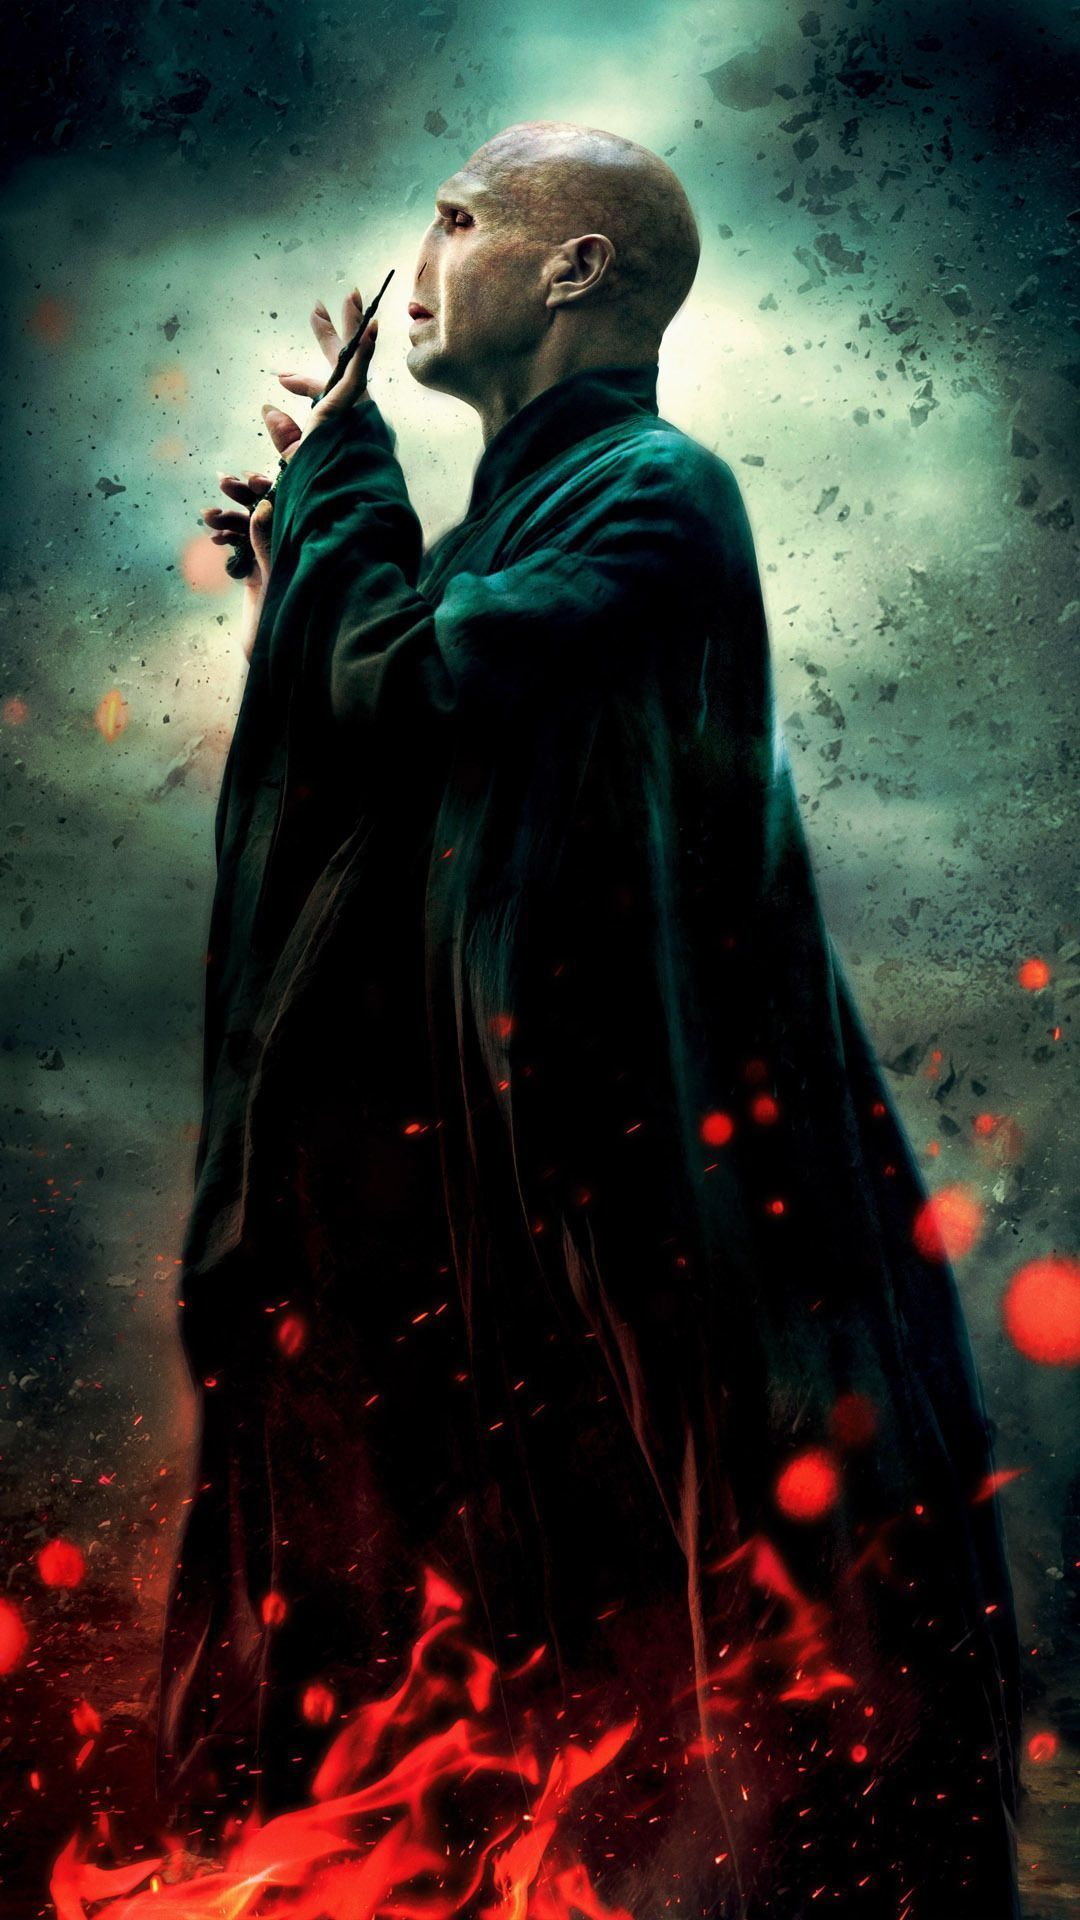 lord voldemort mobile wallpaper 8701 | harry potter!♡♡ | pinterest